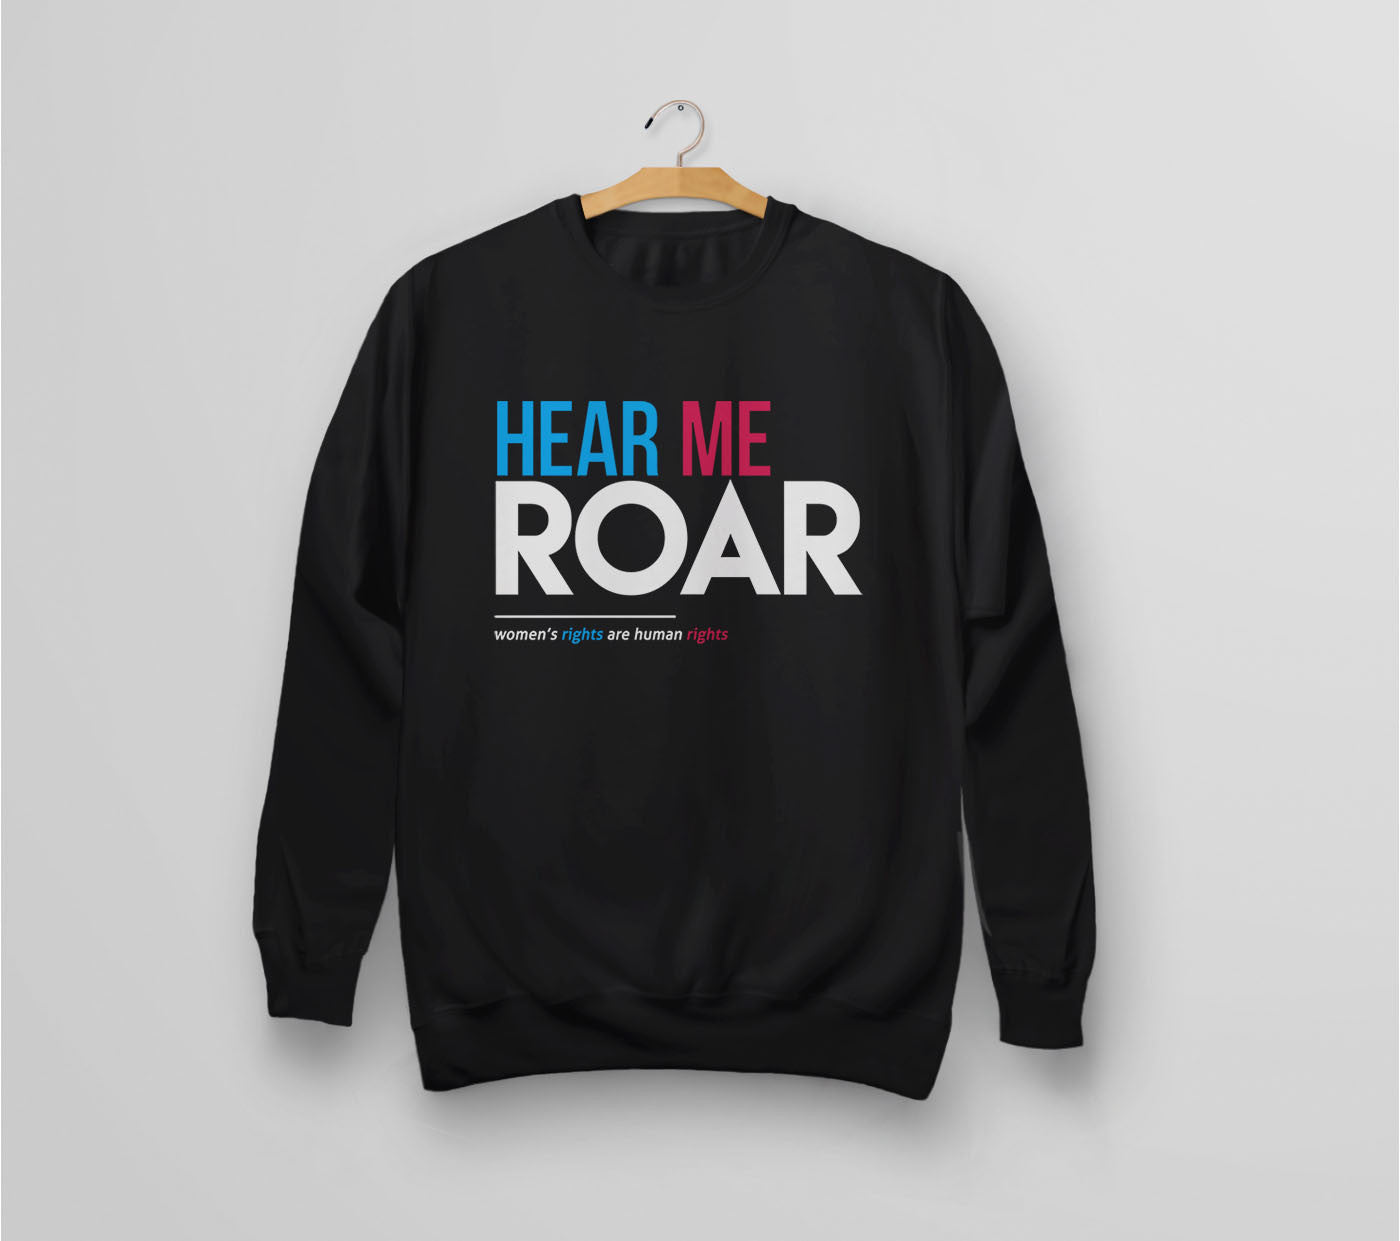 Hear Me Roar: feminist sweatshirt - black